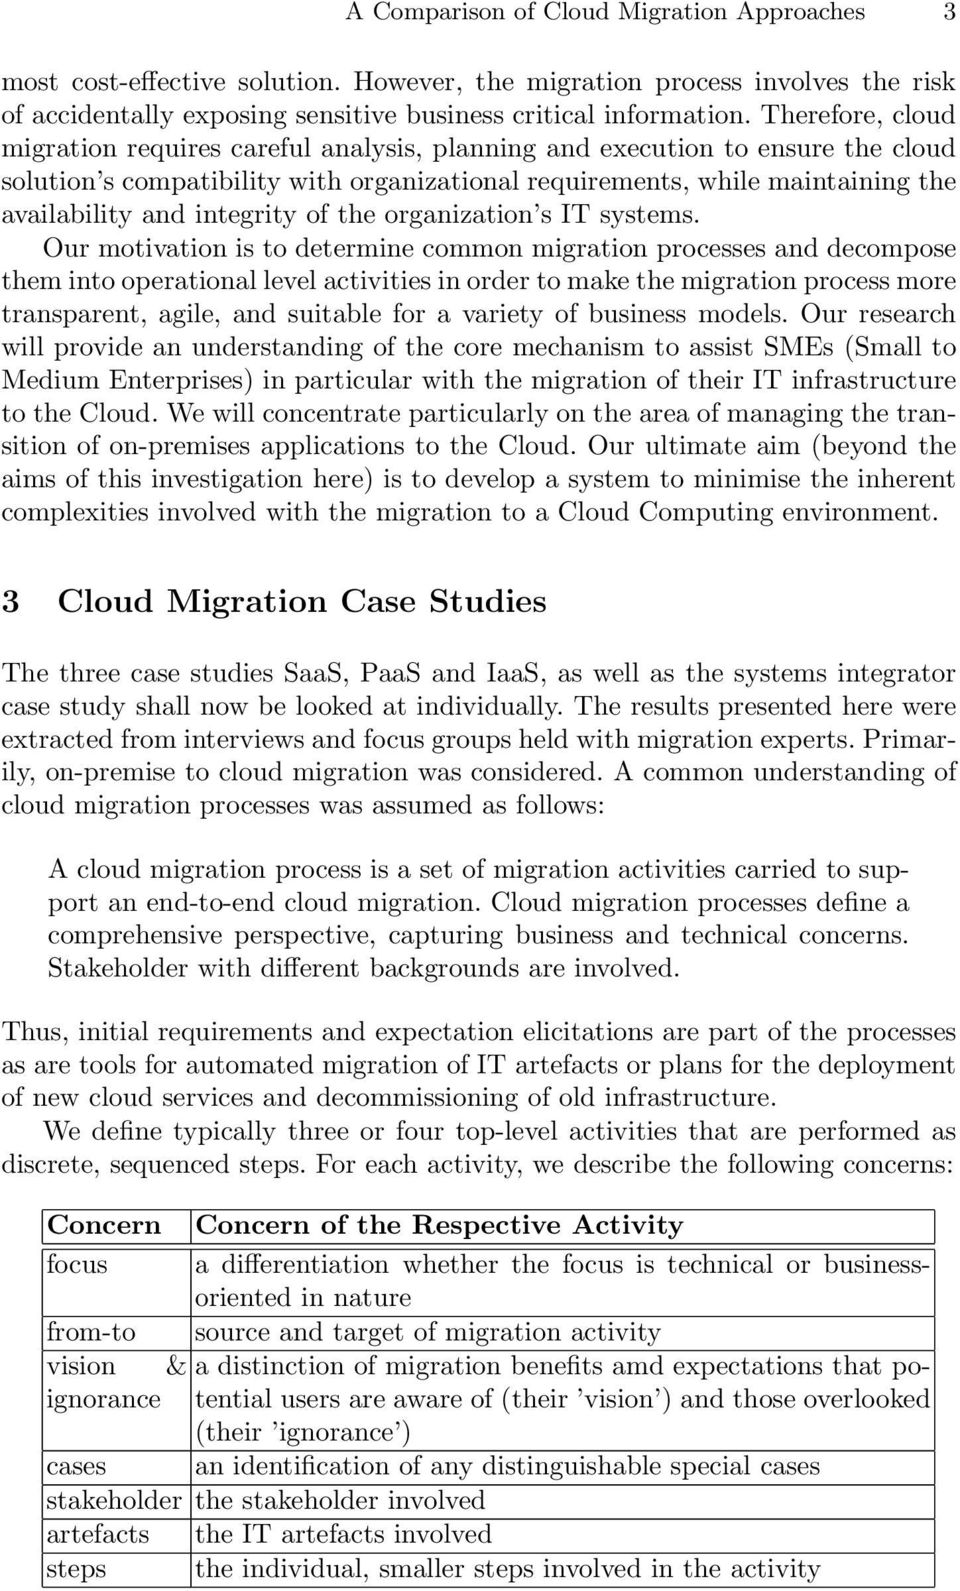 A Comparison of On-premise to Cloud Migration Approaches - PDF